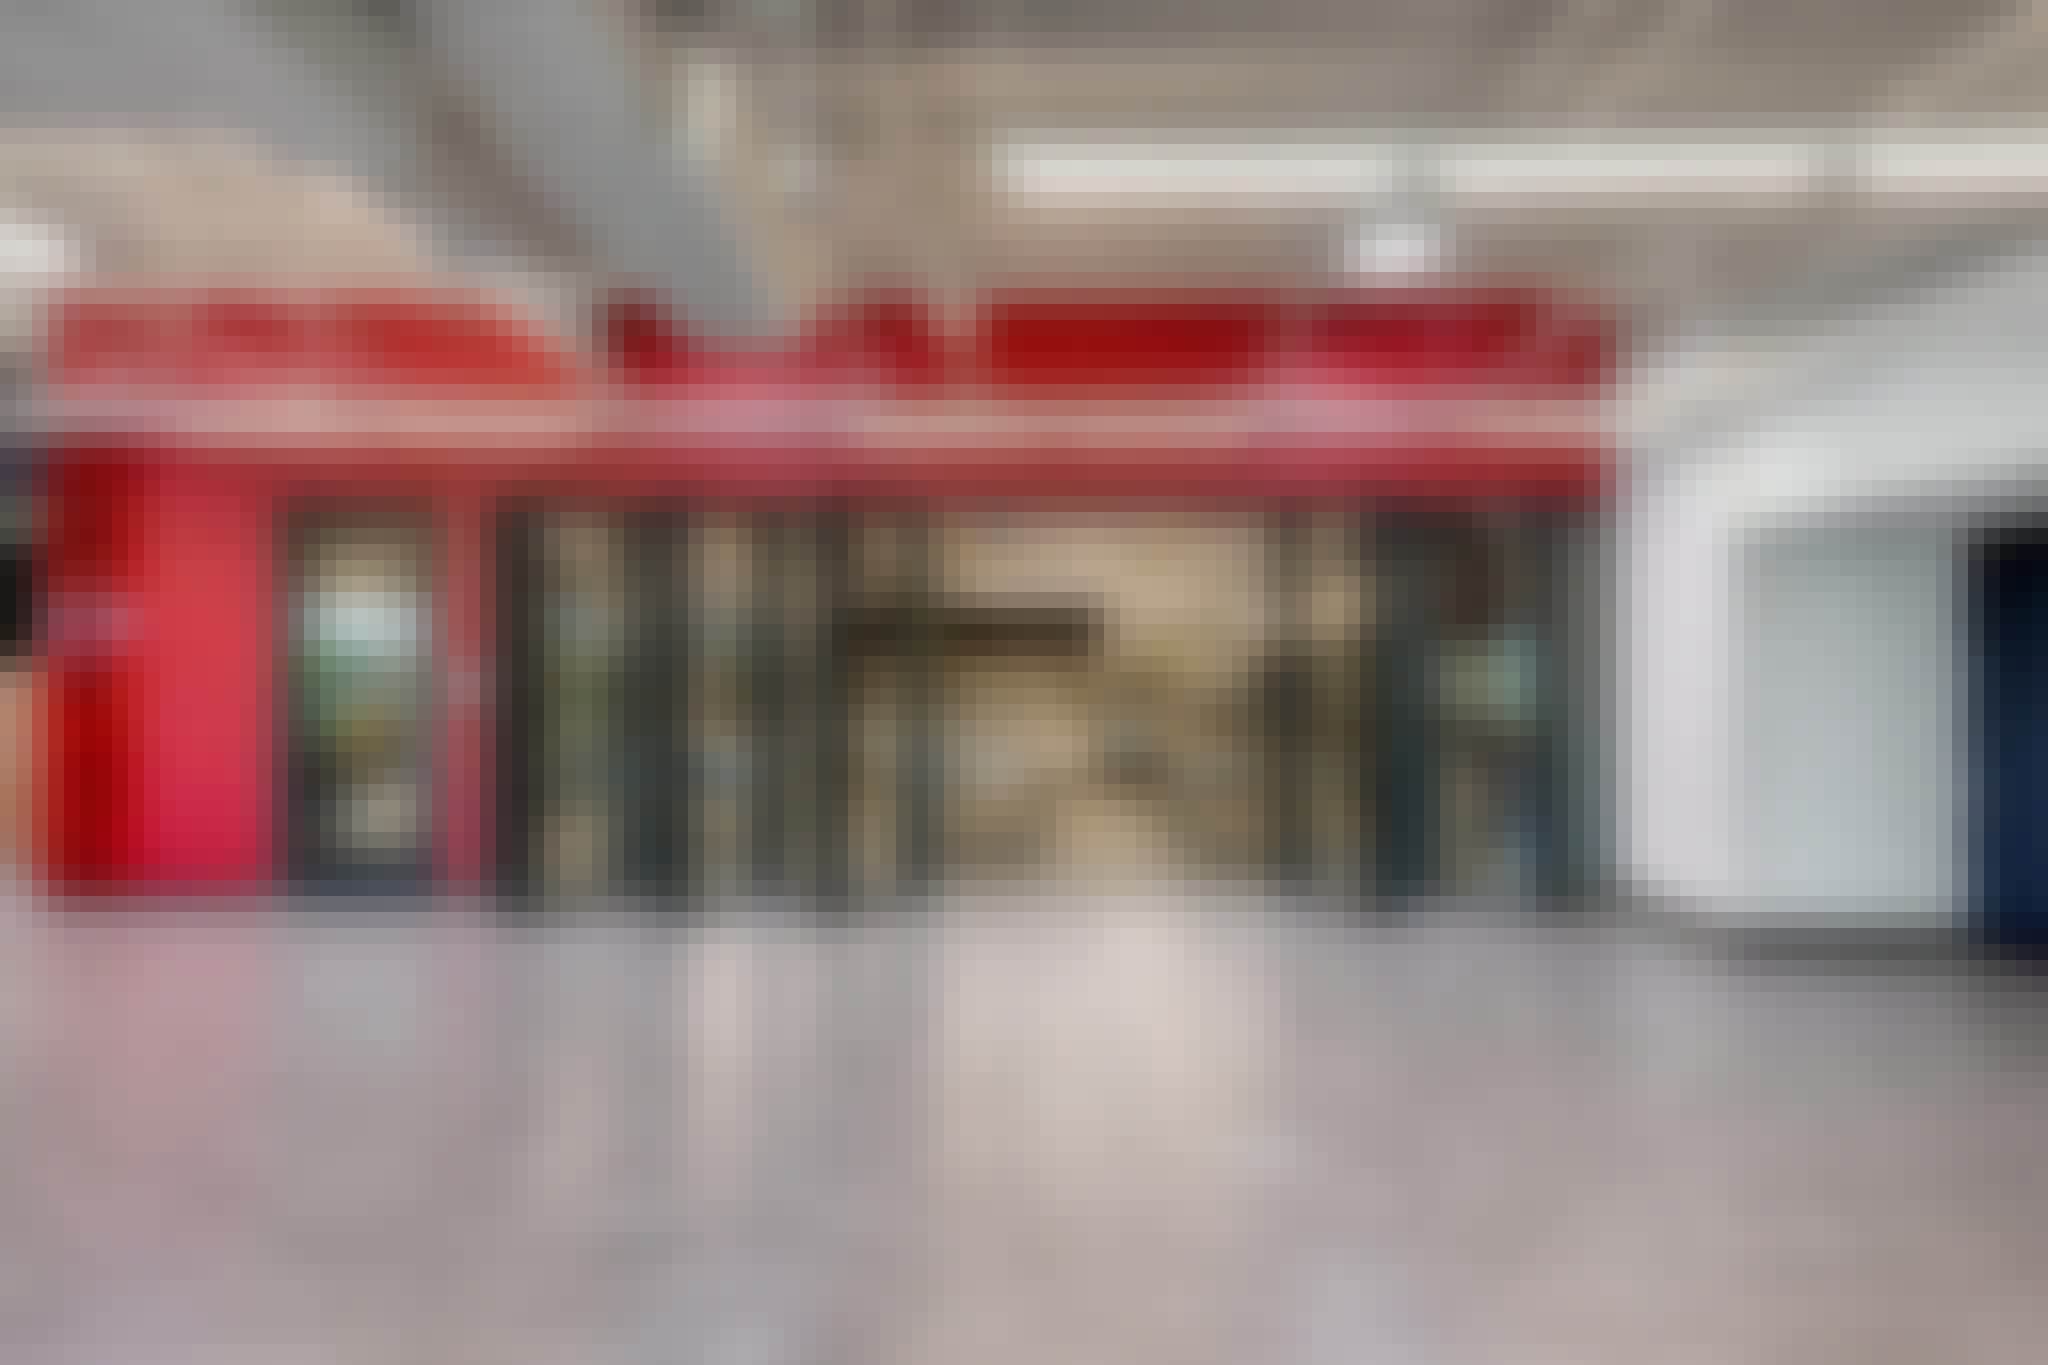 high school career and technical center in Texas with folding glass walls for flexibility in teaching